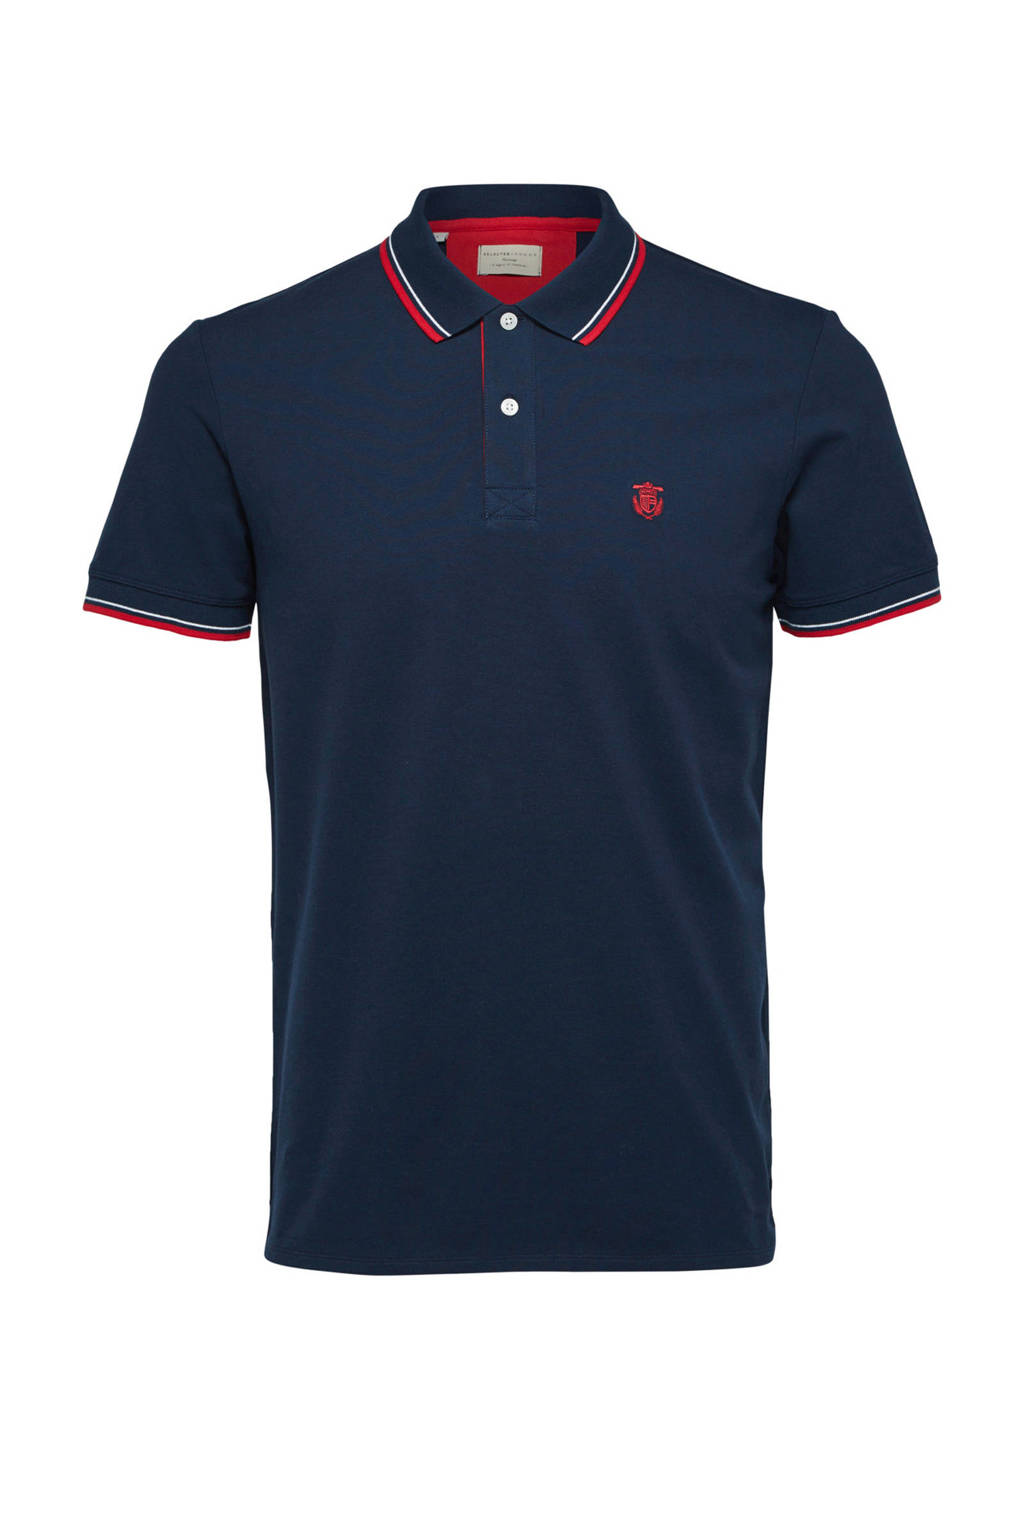 SELECTED HOMME regular fit polo, Marine